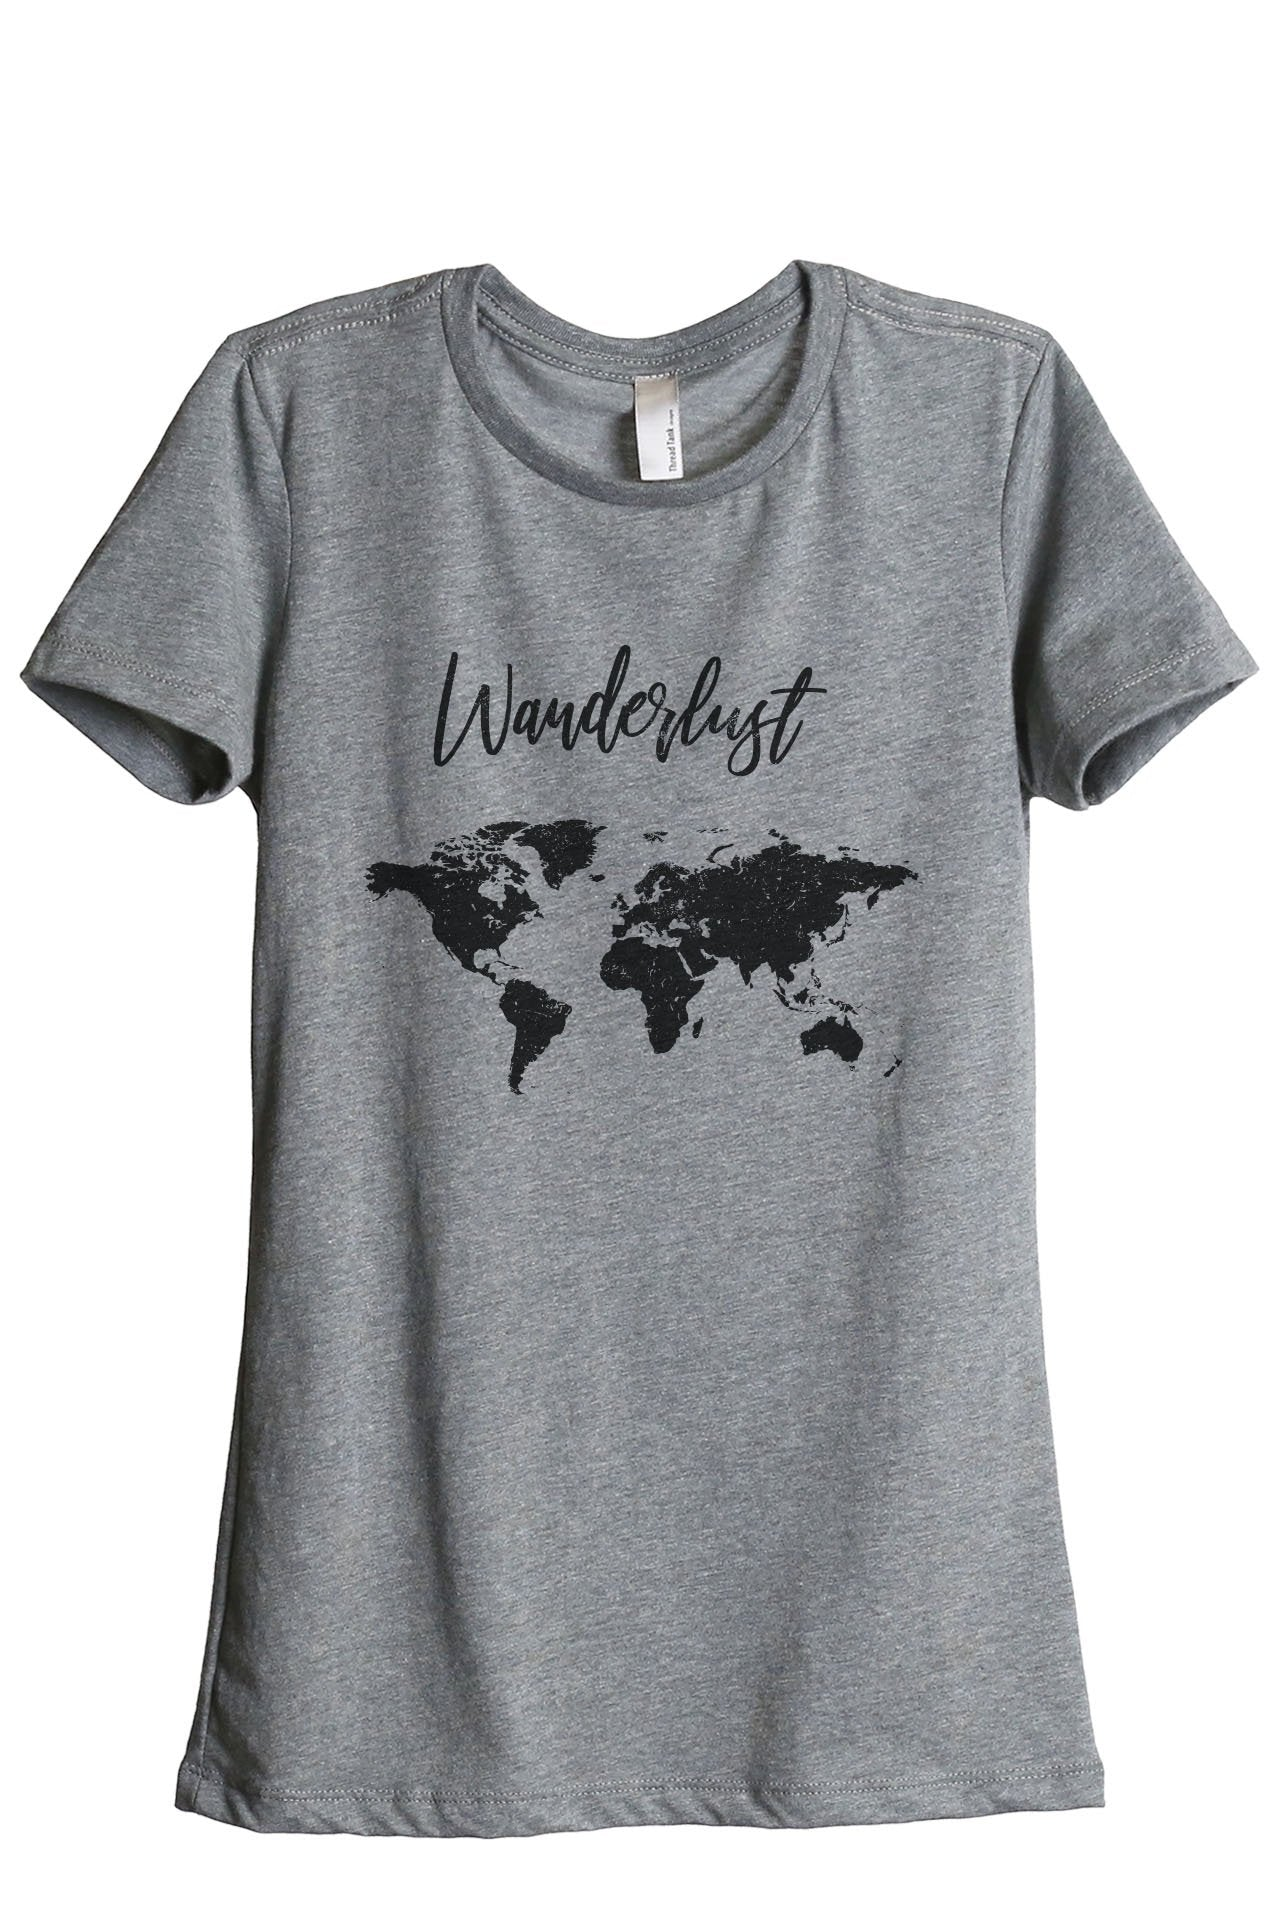 Wanderlust Travel World Women's Relaxed Crewneck T-Shirt Top Tee Heather Grey